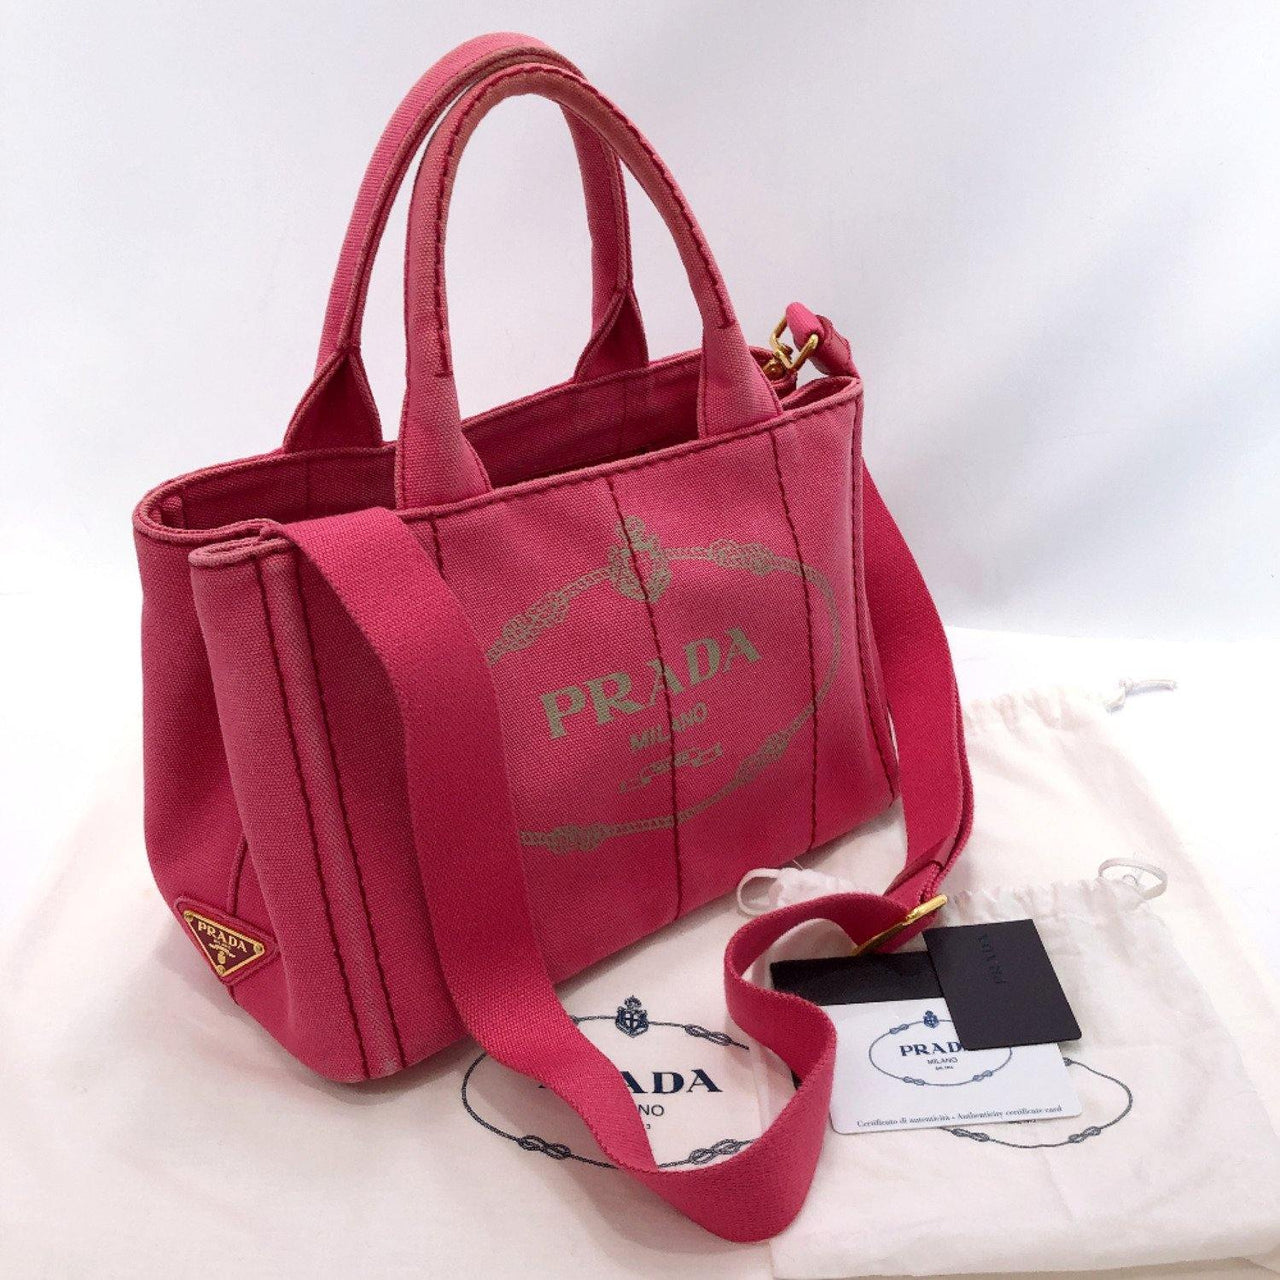 PRADA Tote Bag B2439G Canapa mini canvas pink Women Used - JP-BRANDS.com